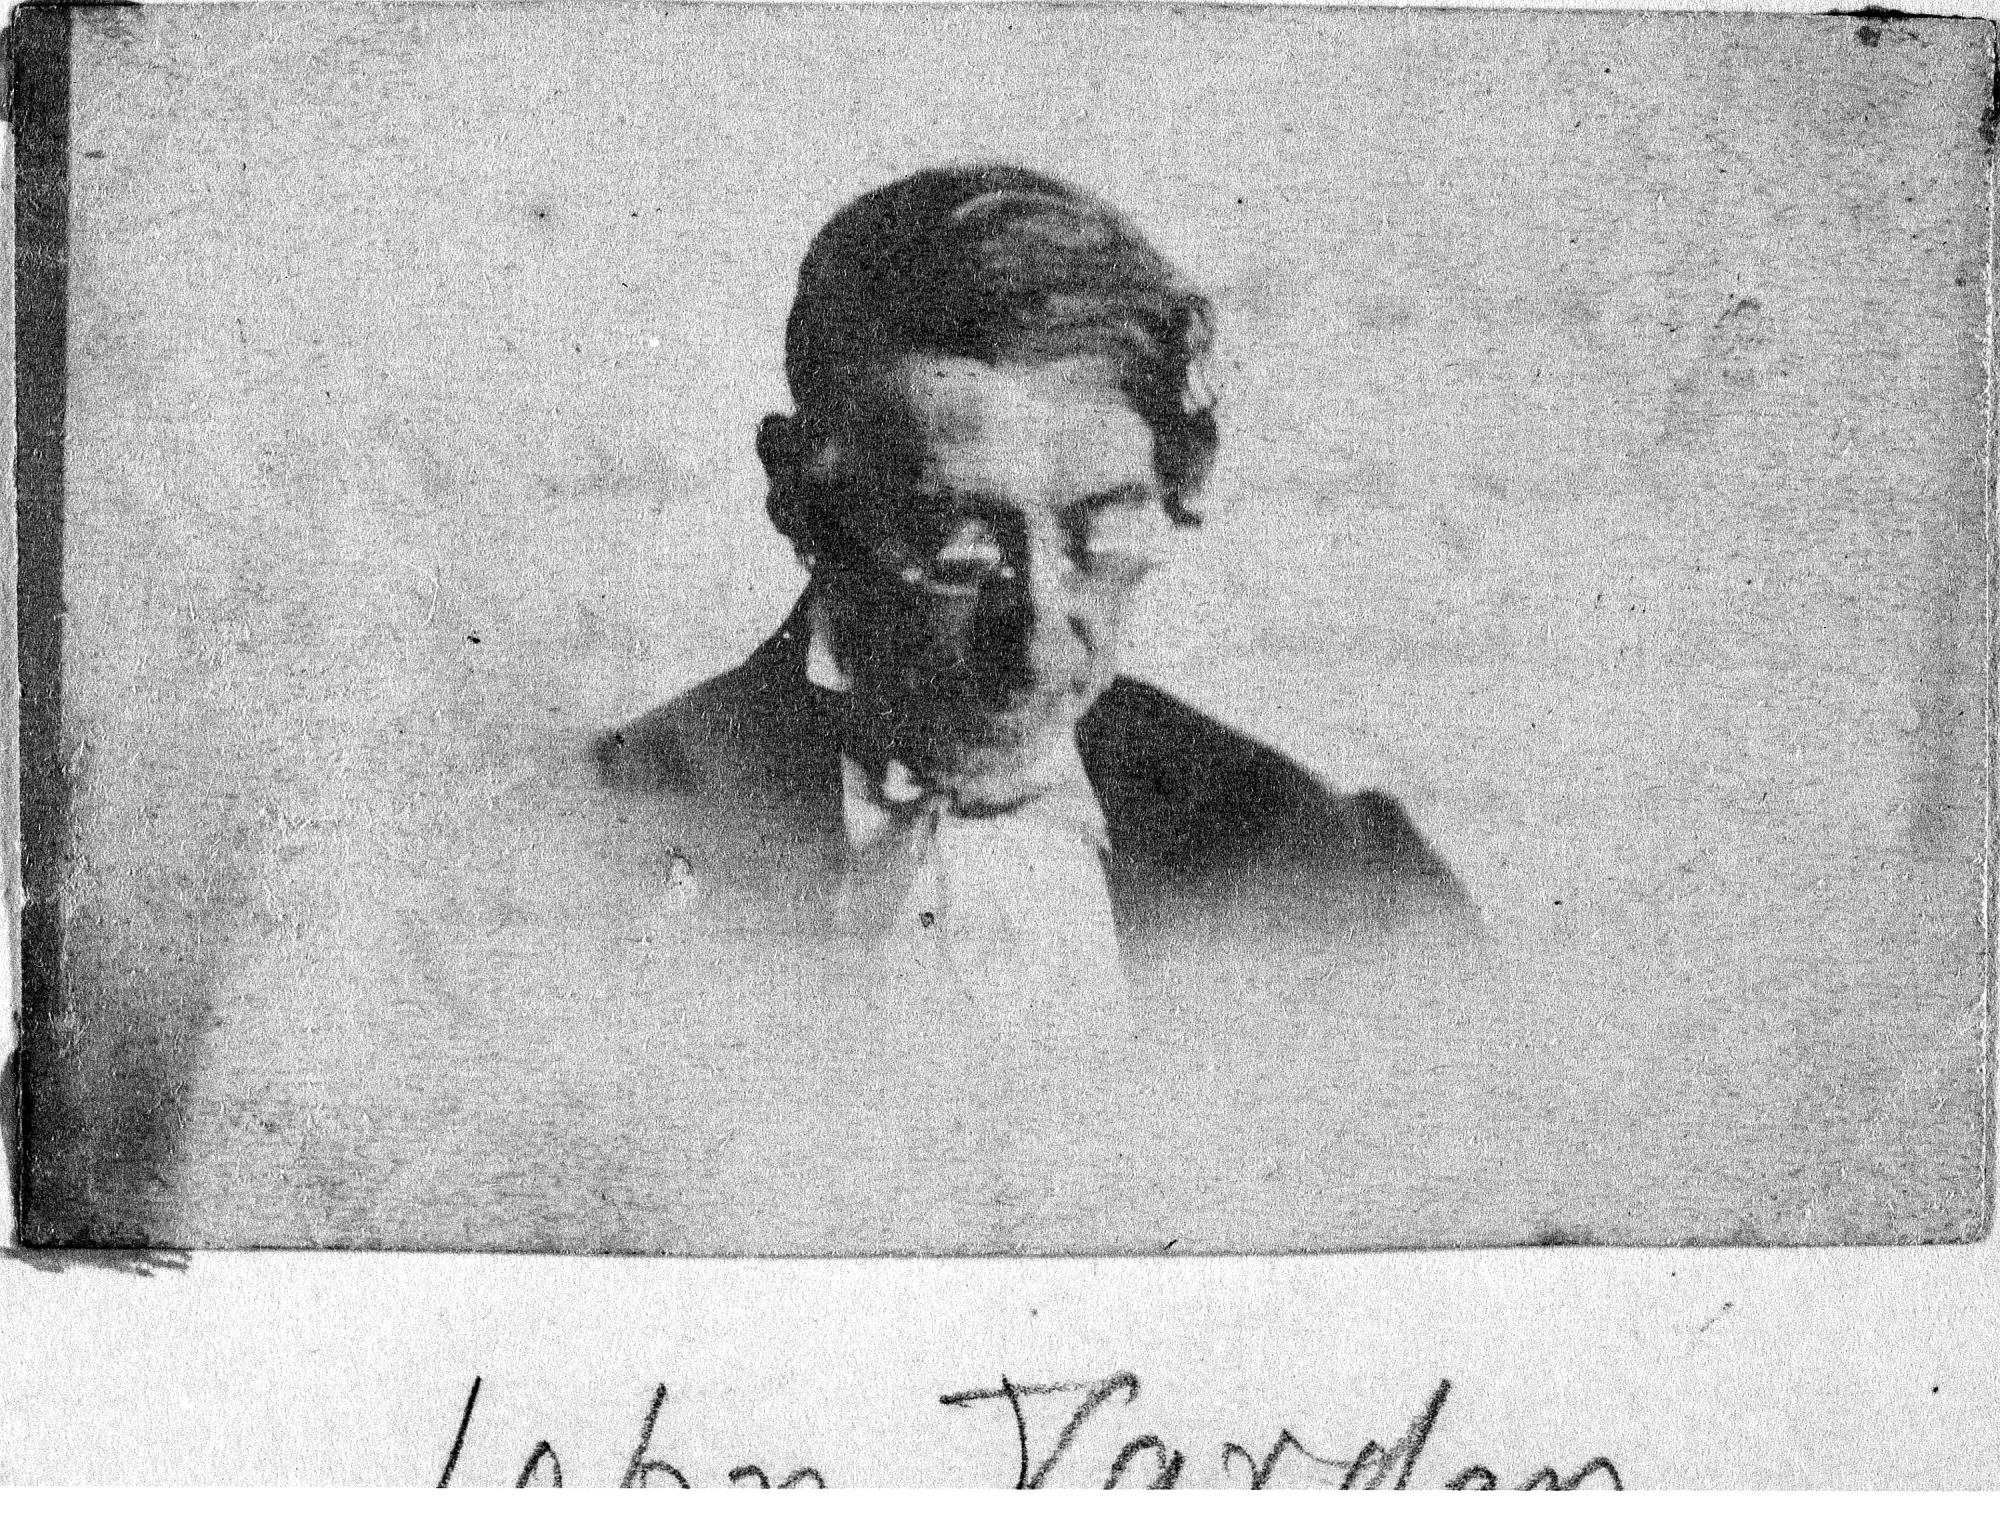 John Varden, by Unknown, Unknown, probably c. 1860, Smithsonian Archives - History Div, 85-8124.